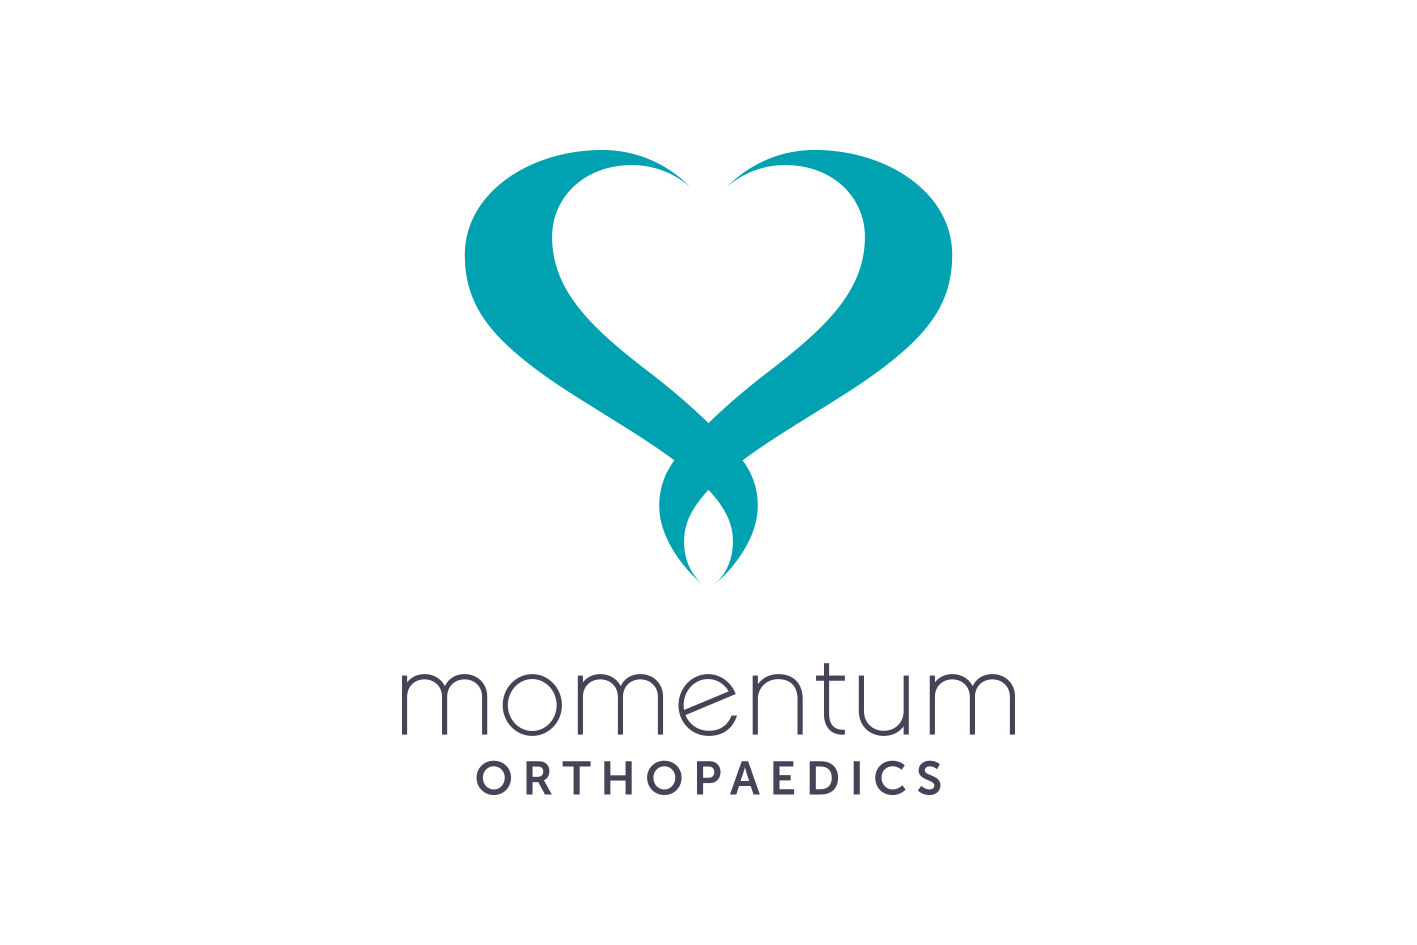 Momentum  Branding and website for orthopaedic clinic, commissioned by Cobb Healthcare and Spire Healthcare.